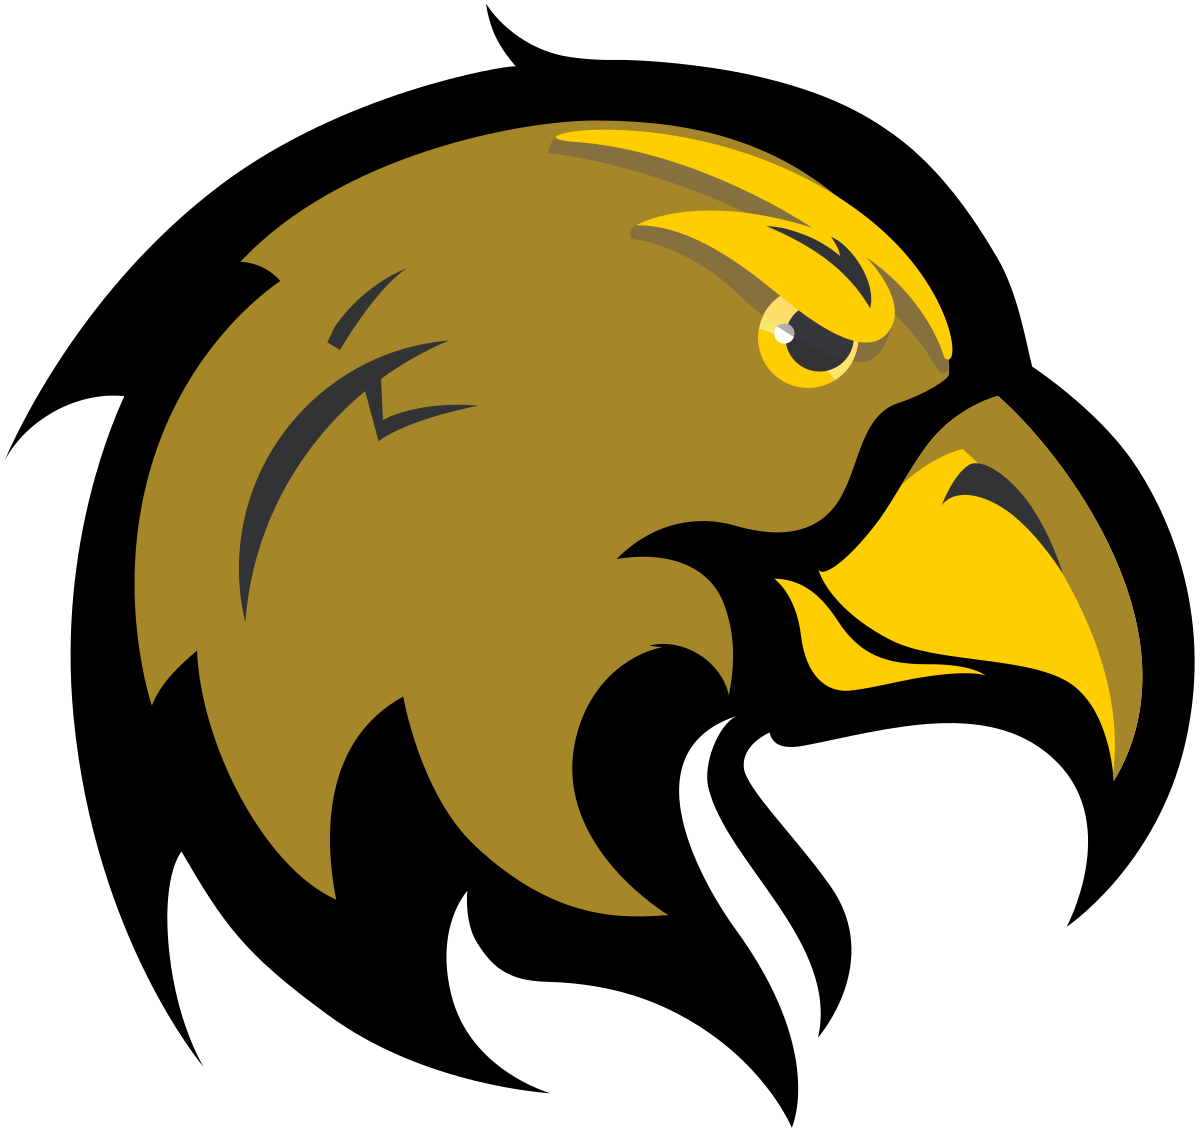 Eagles clipart desert eagle. Cal state los angeles